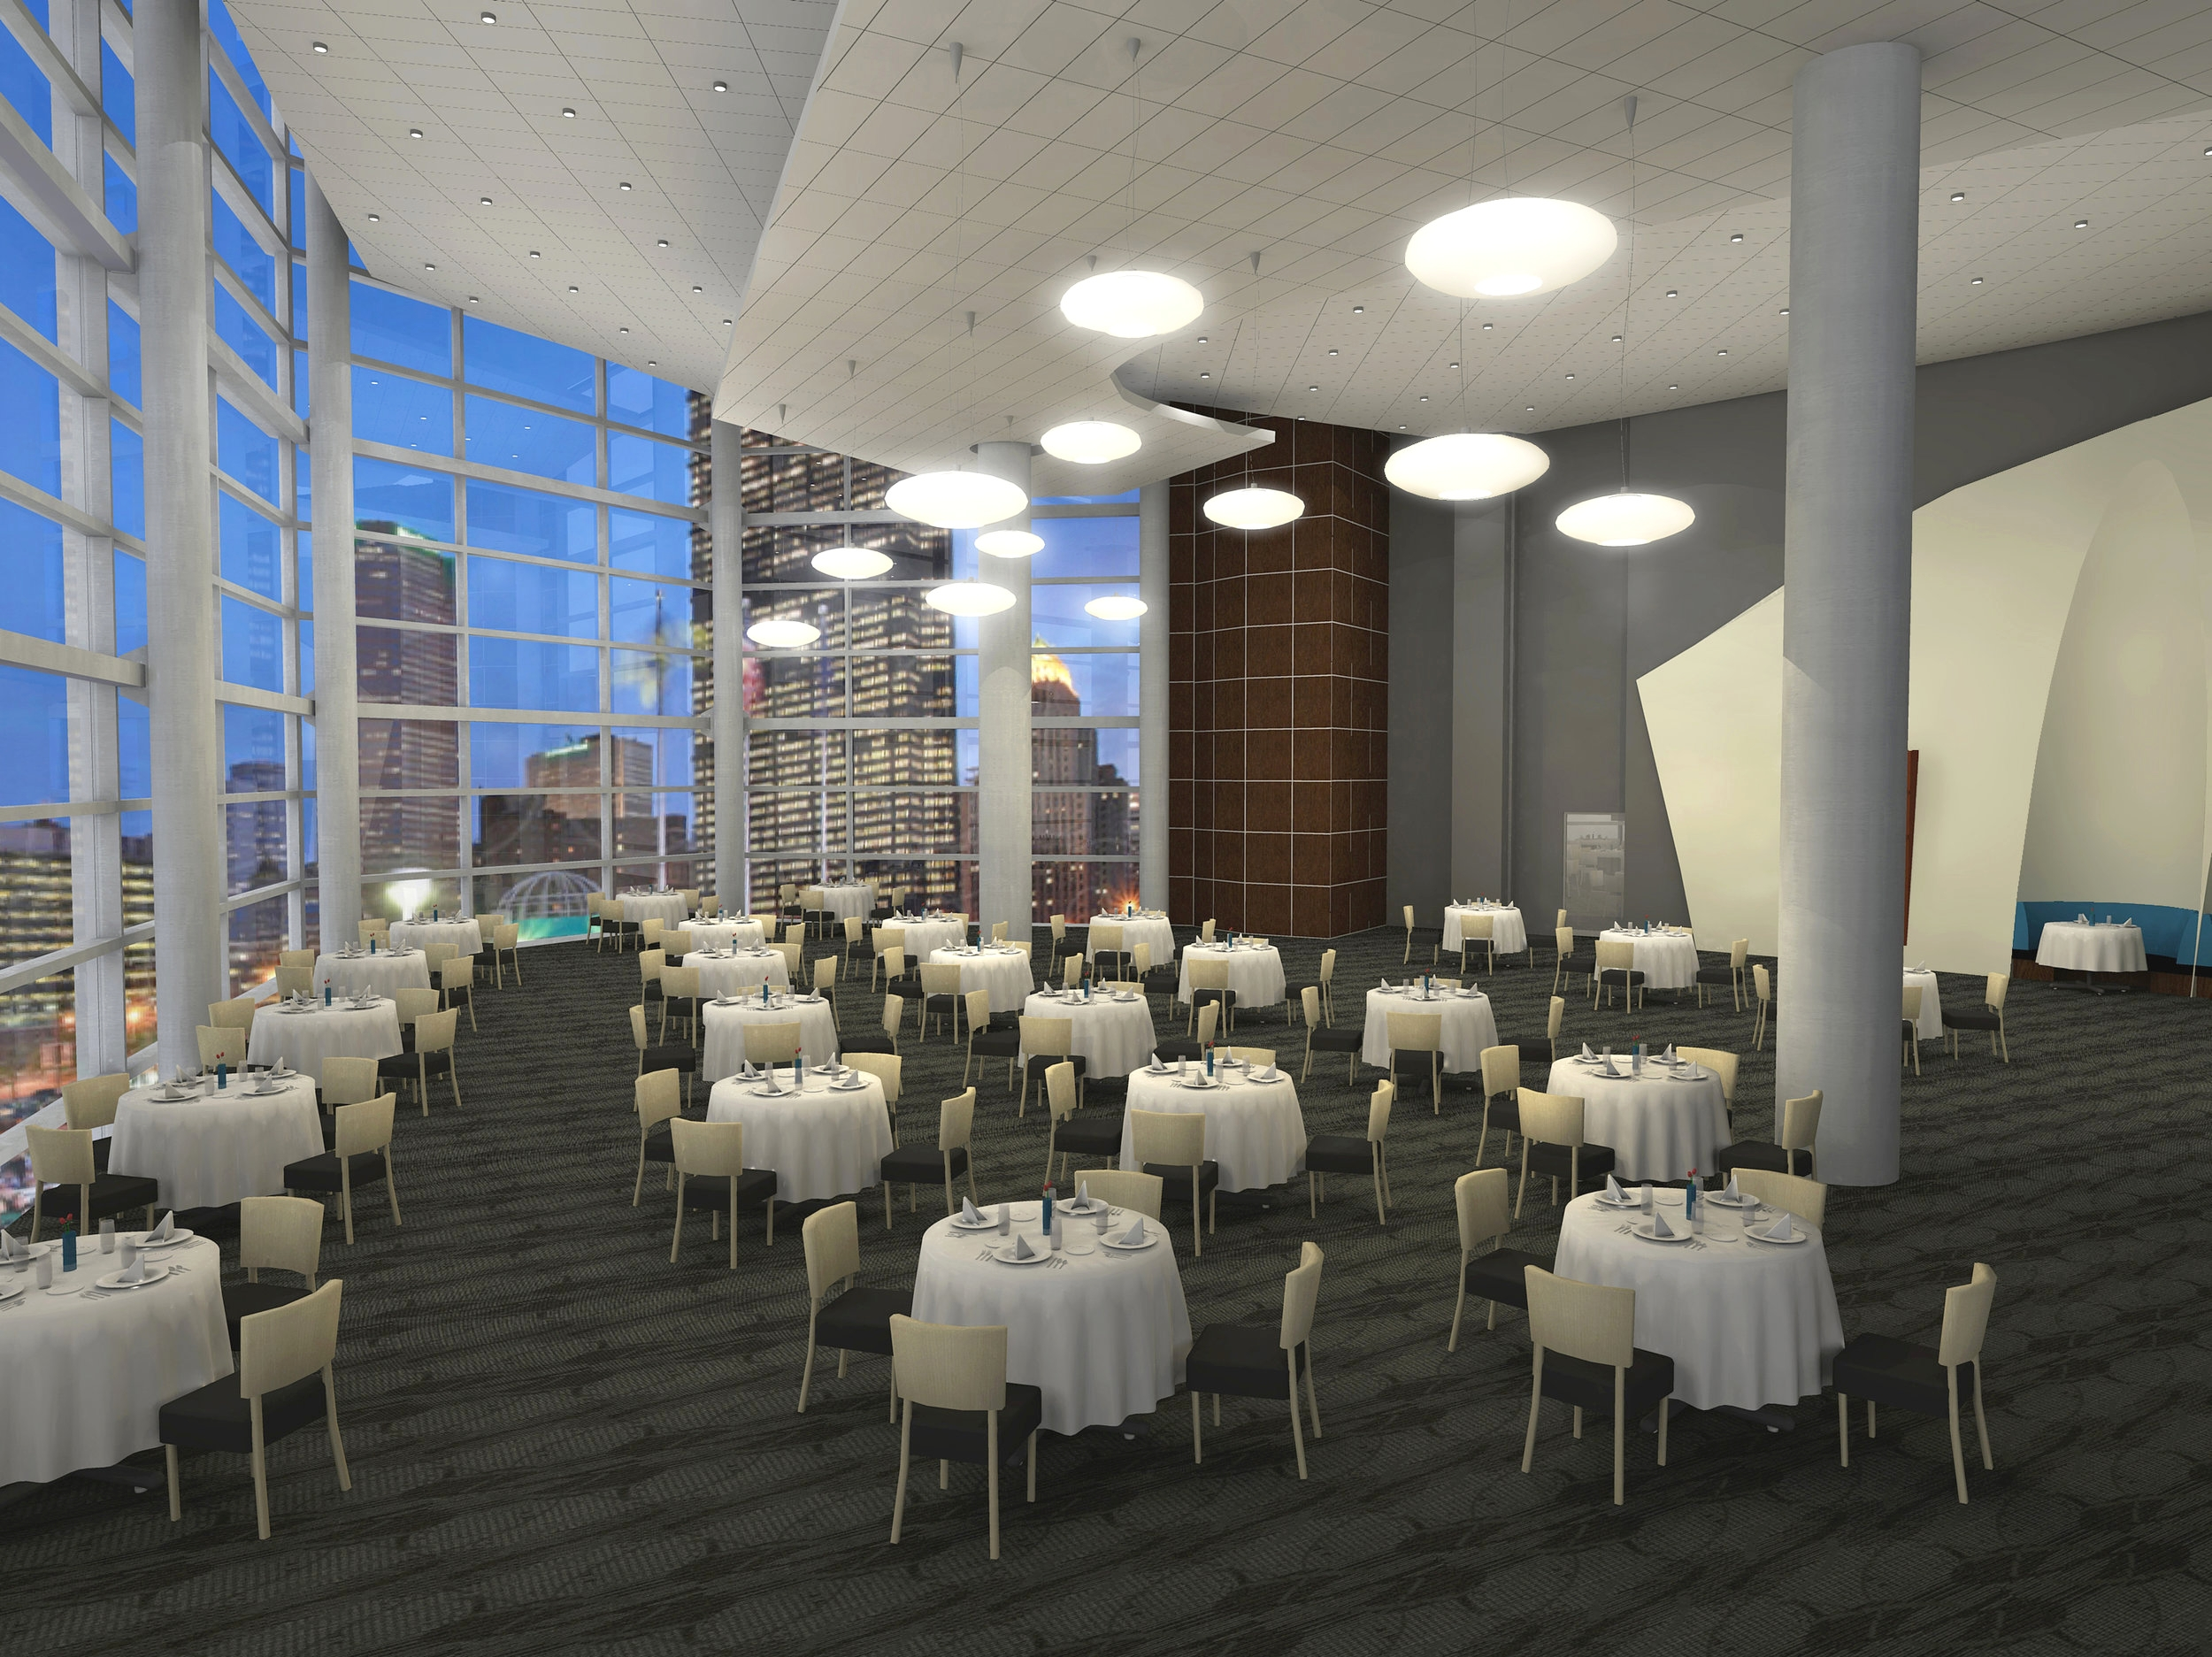 CONSOL ENERGY ARENA DINING